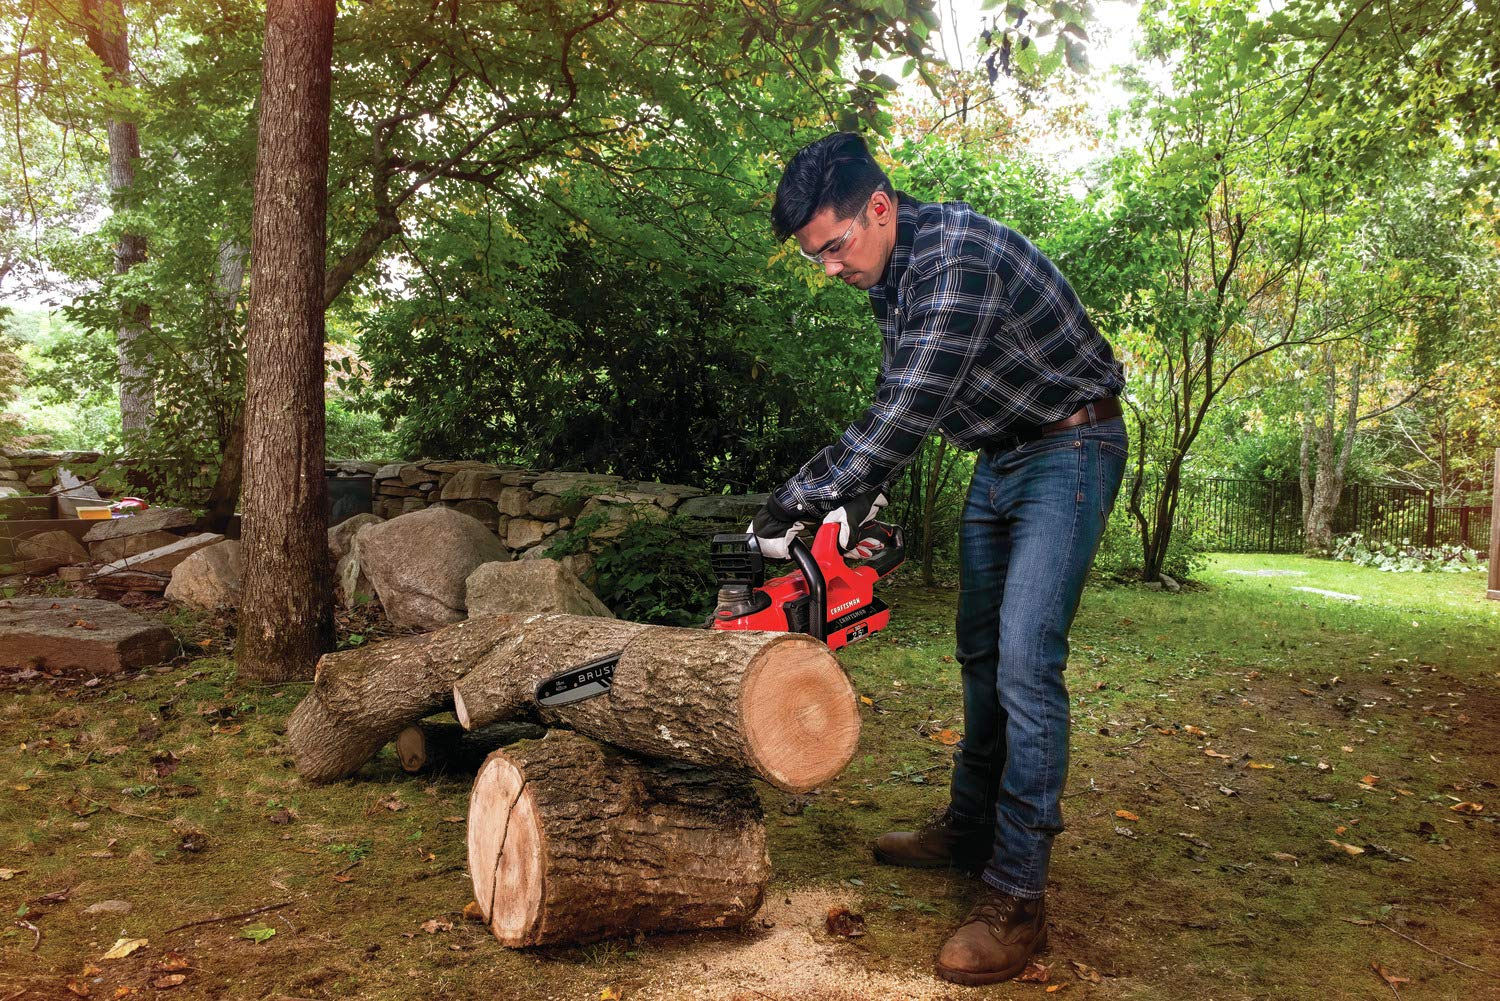 Craftsman CMCCS660E1 Chainsaws product image 13